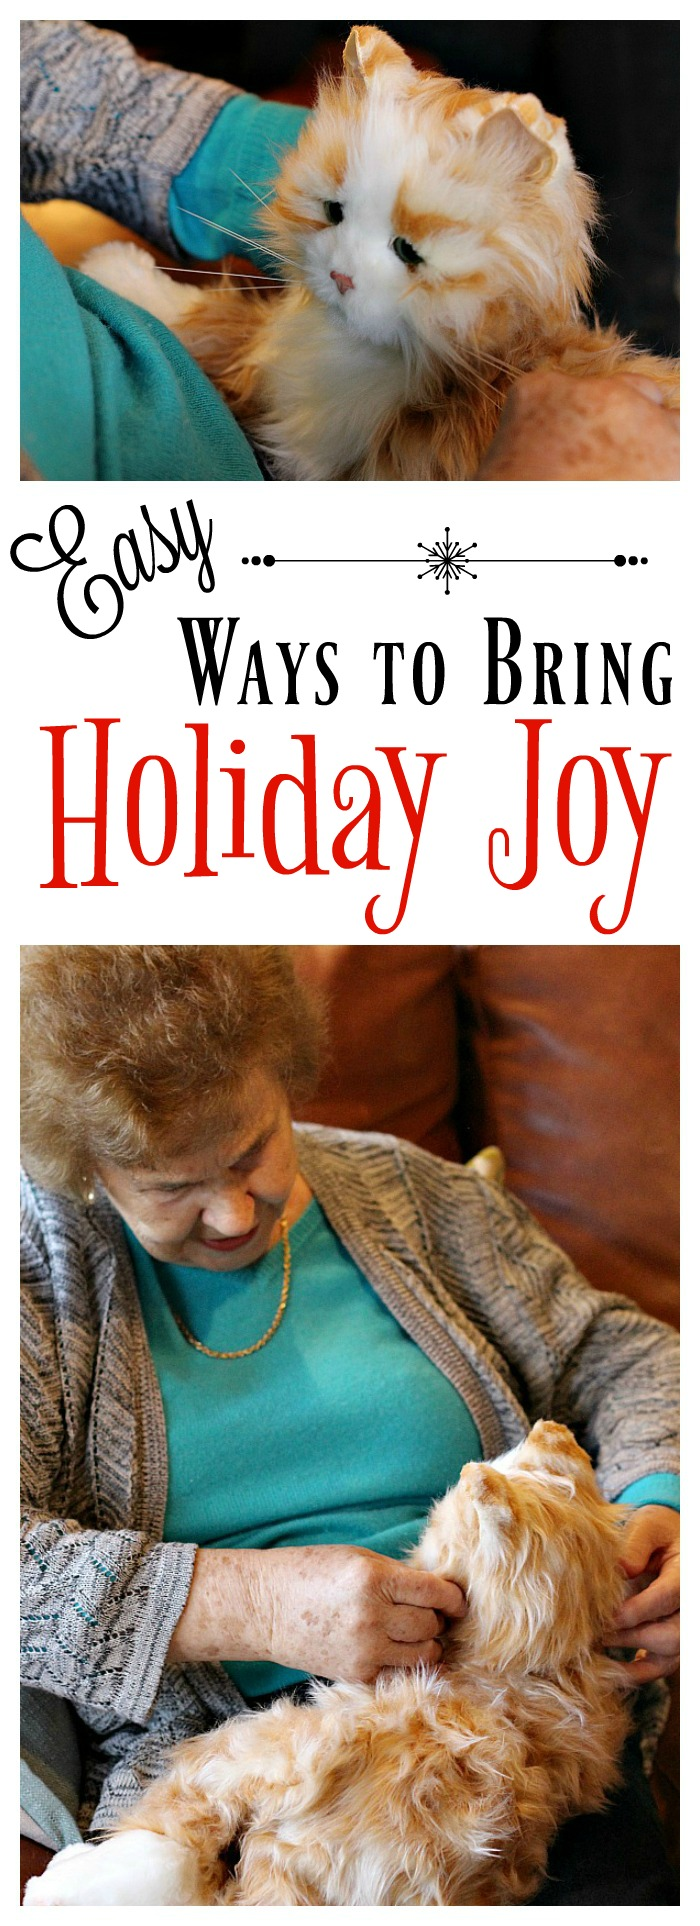 easy-ways-to-bring-holiday-joy